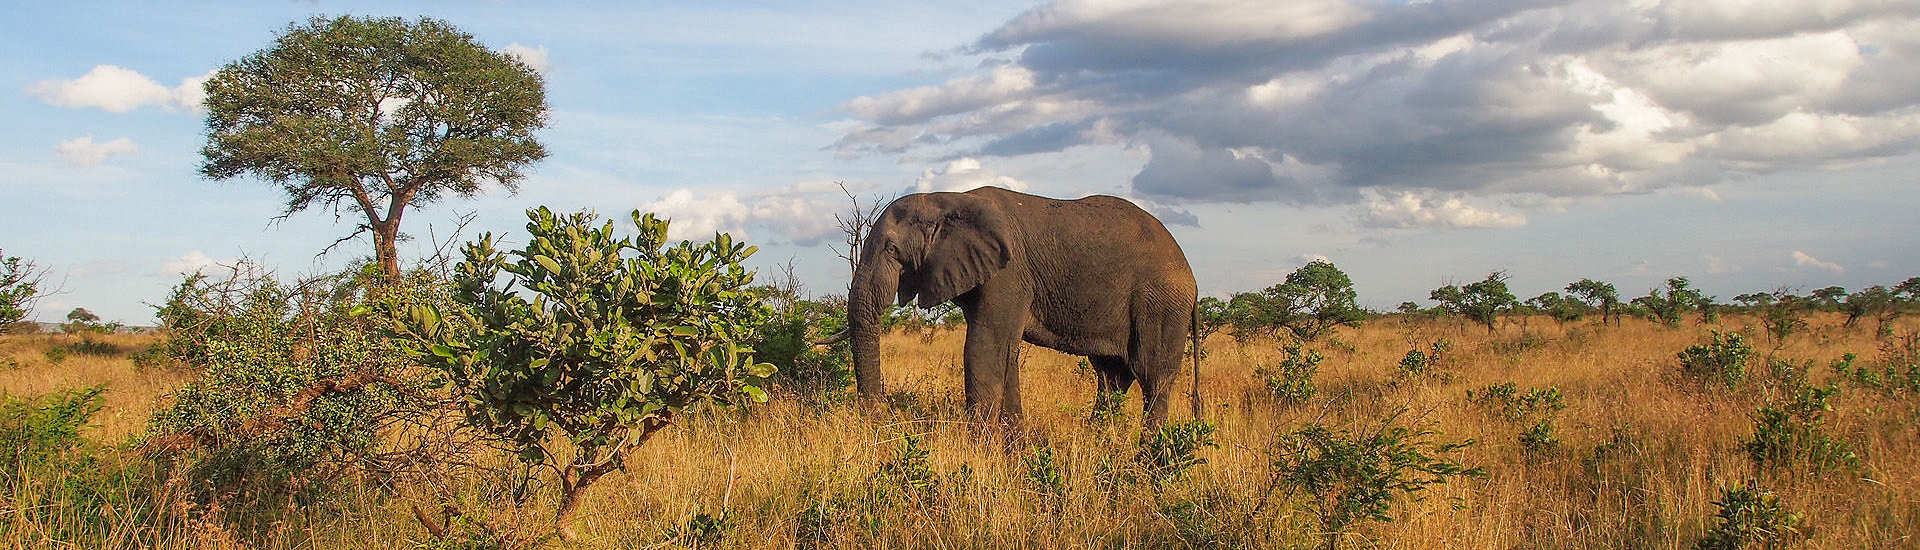 Safaris im Kruger Nationalpark – Elefant